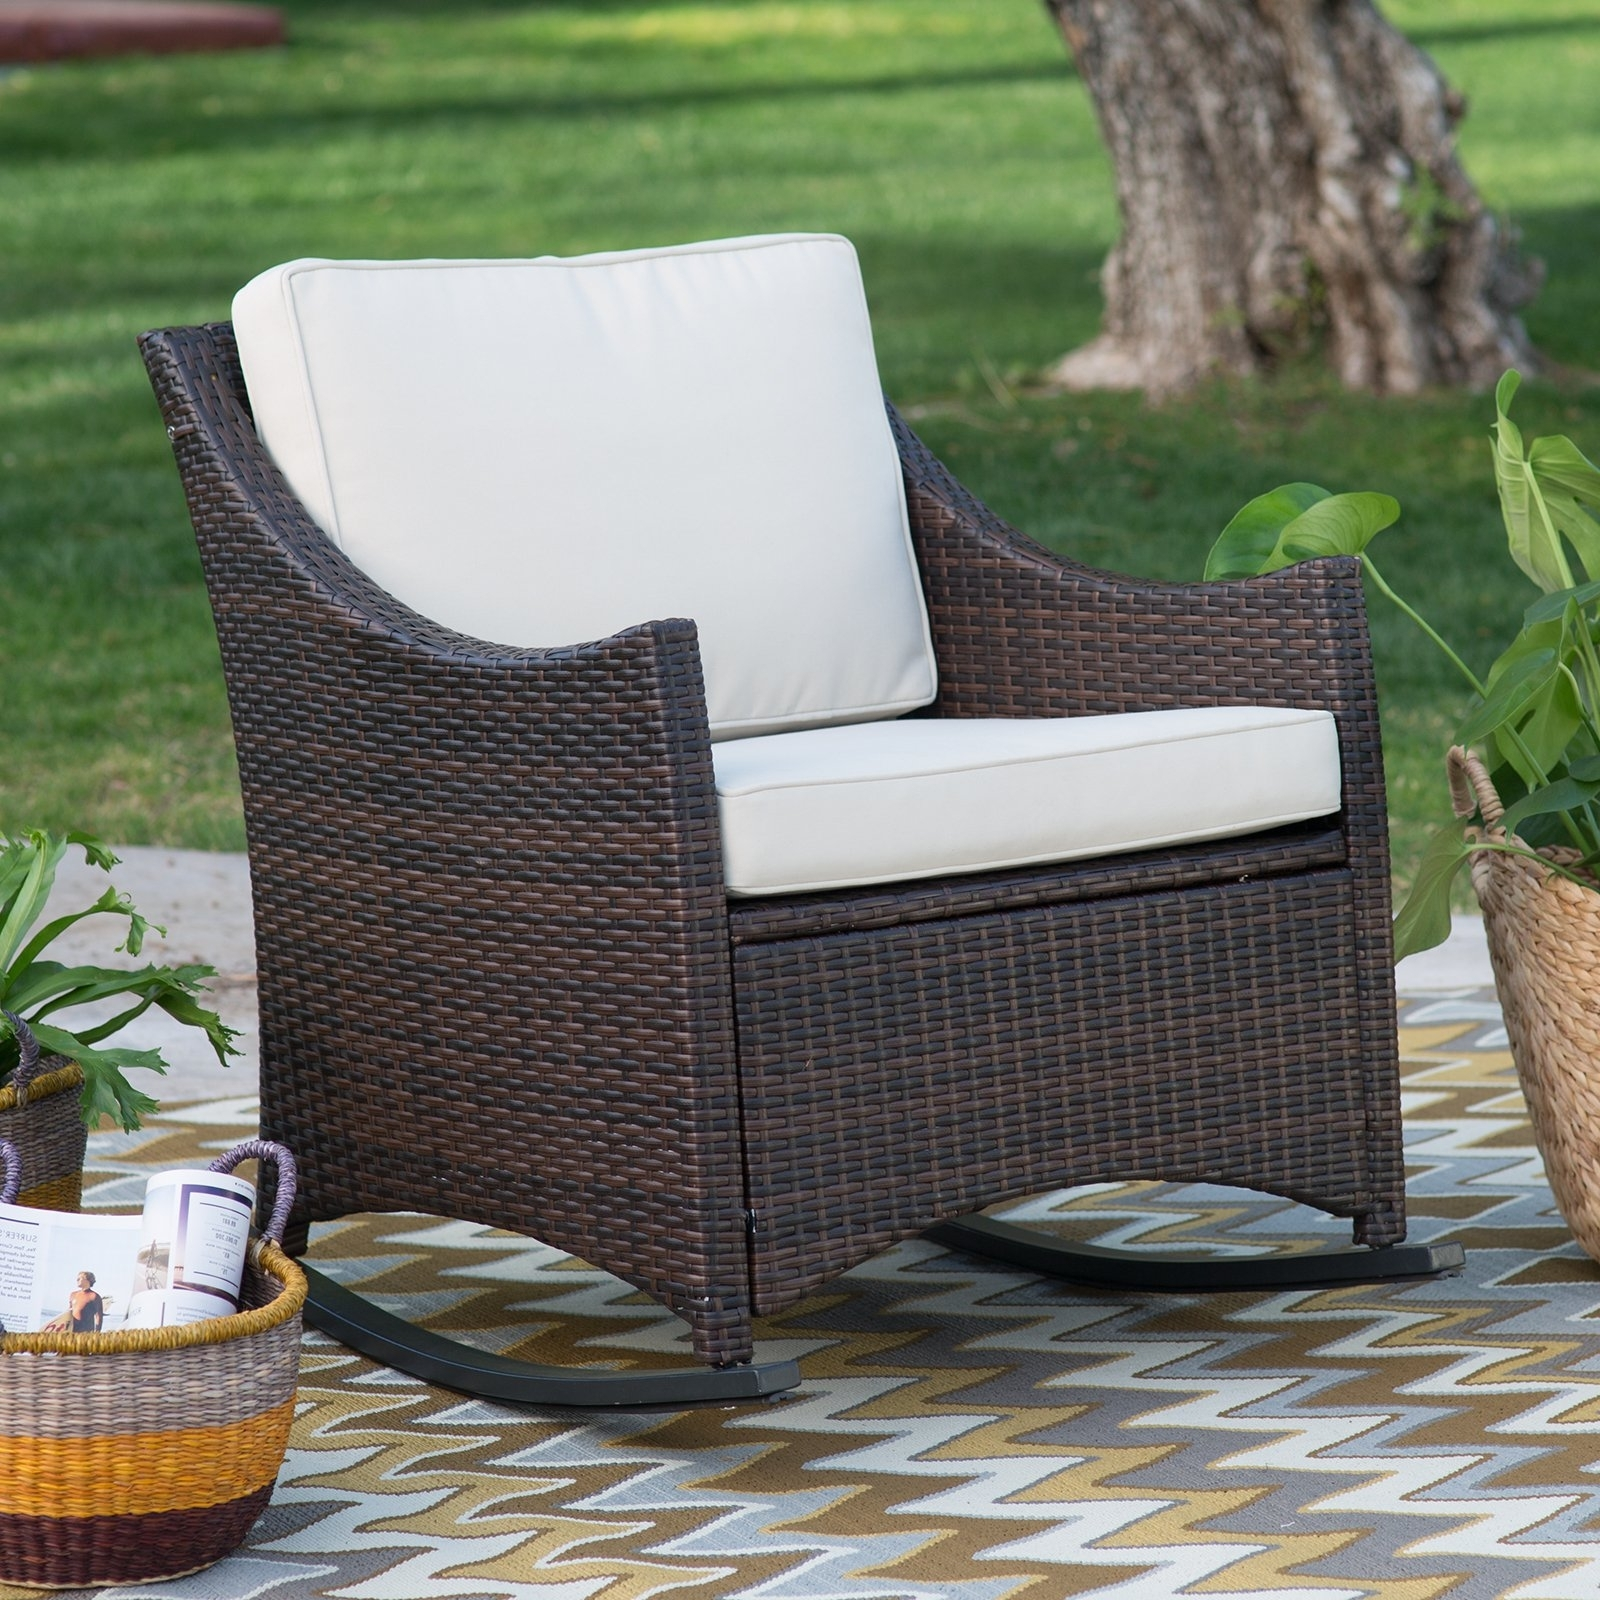 Coral Coast Harrison Club Style Rocking Chair With Cushion – Walmart Intended For Recent Wicker Rocking Chairs For Outdoors (View 3 of 20)